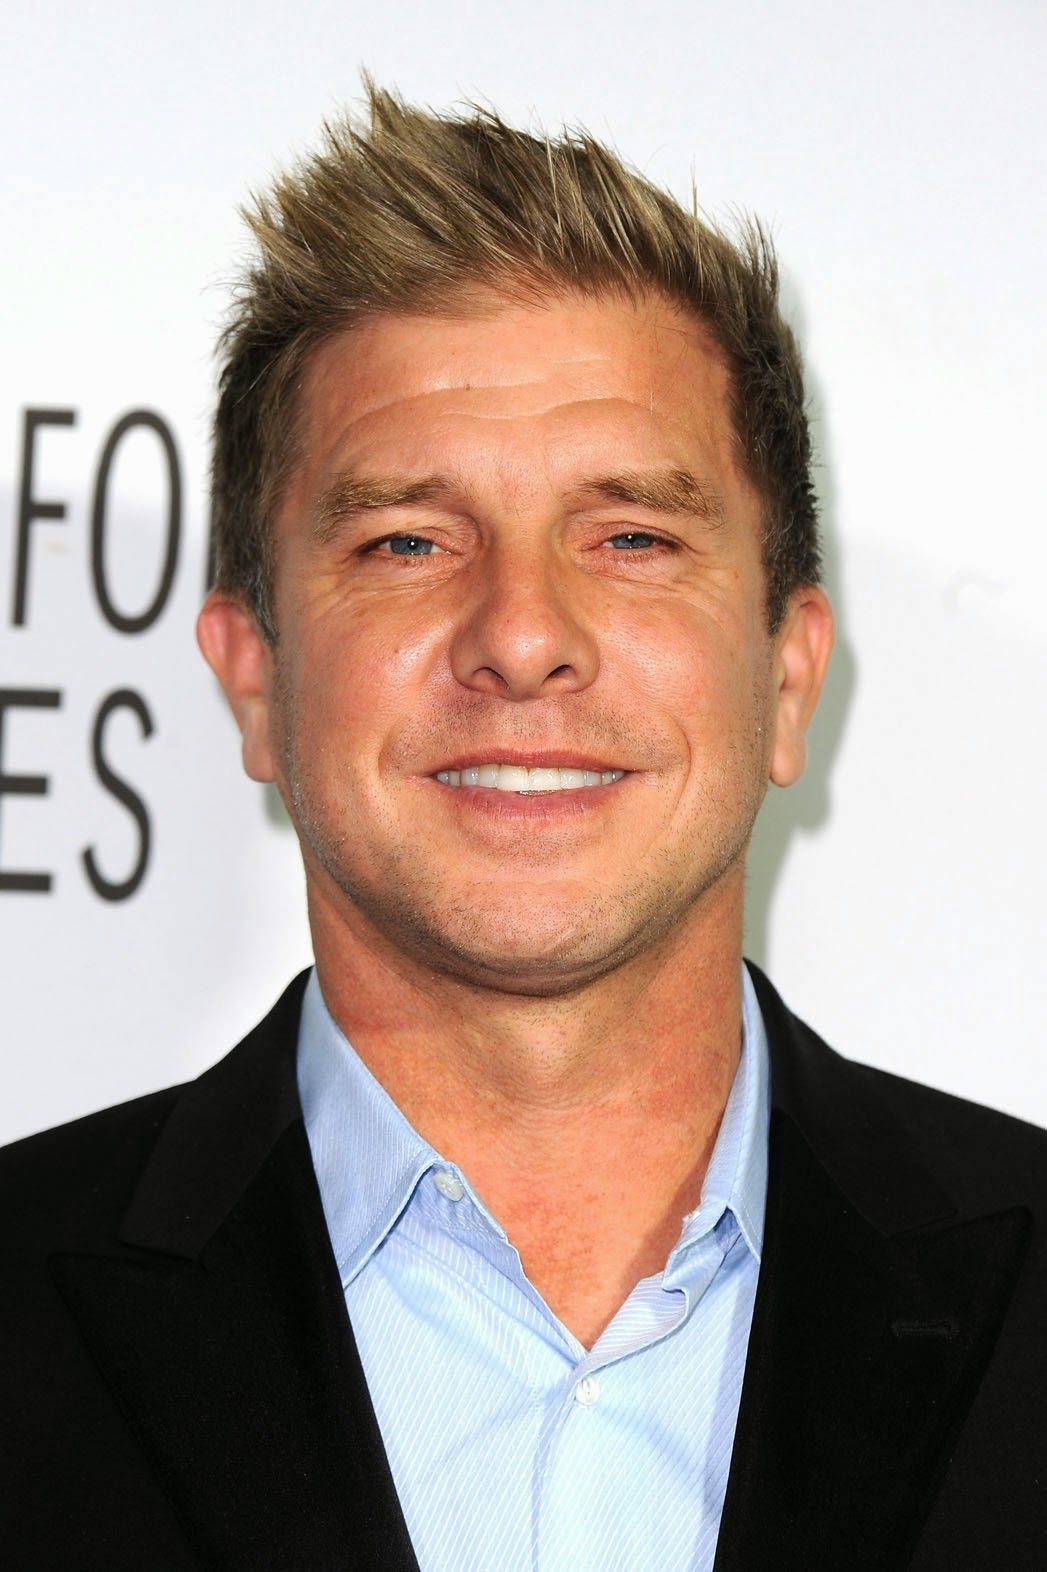 Bates Motel - Season 3 - Kenny Johnson upped to Regular